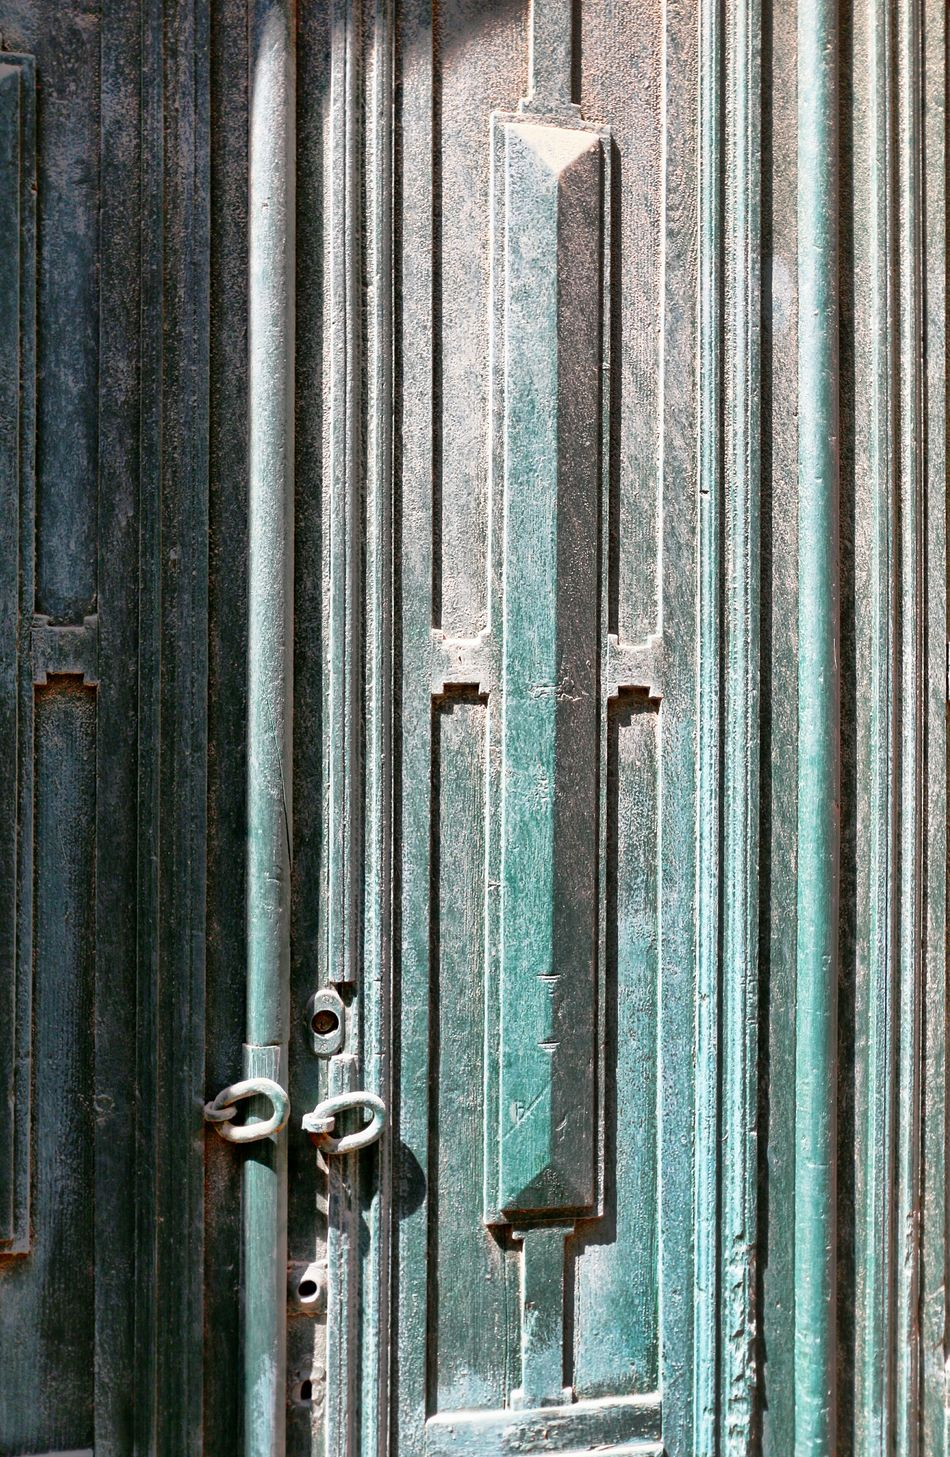 Doors From The Past Doors With Stories Door Doors Lover Keyholes Doors Of Distinction Green Doors Taking Photos Urban Urban Photography Urban Scene Street Photography Street Photo Building Exterior Close-up Full Frame Detail Dusty Colours Symi Greece Old Colour